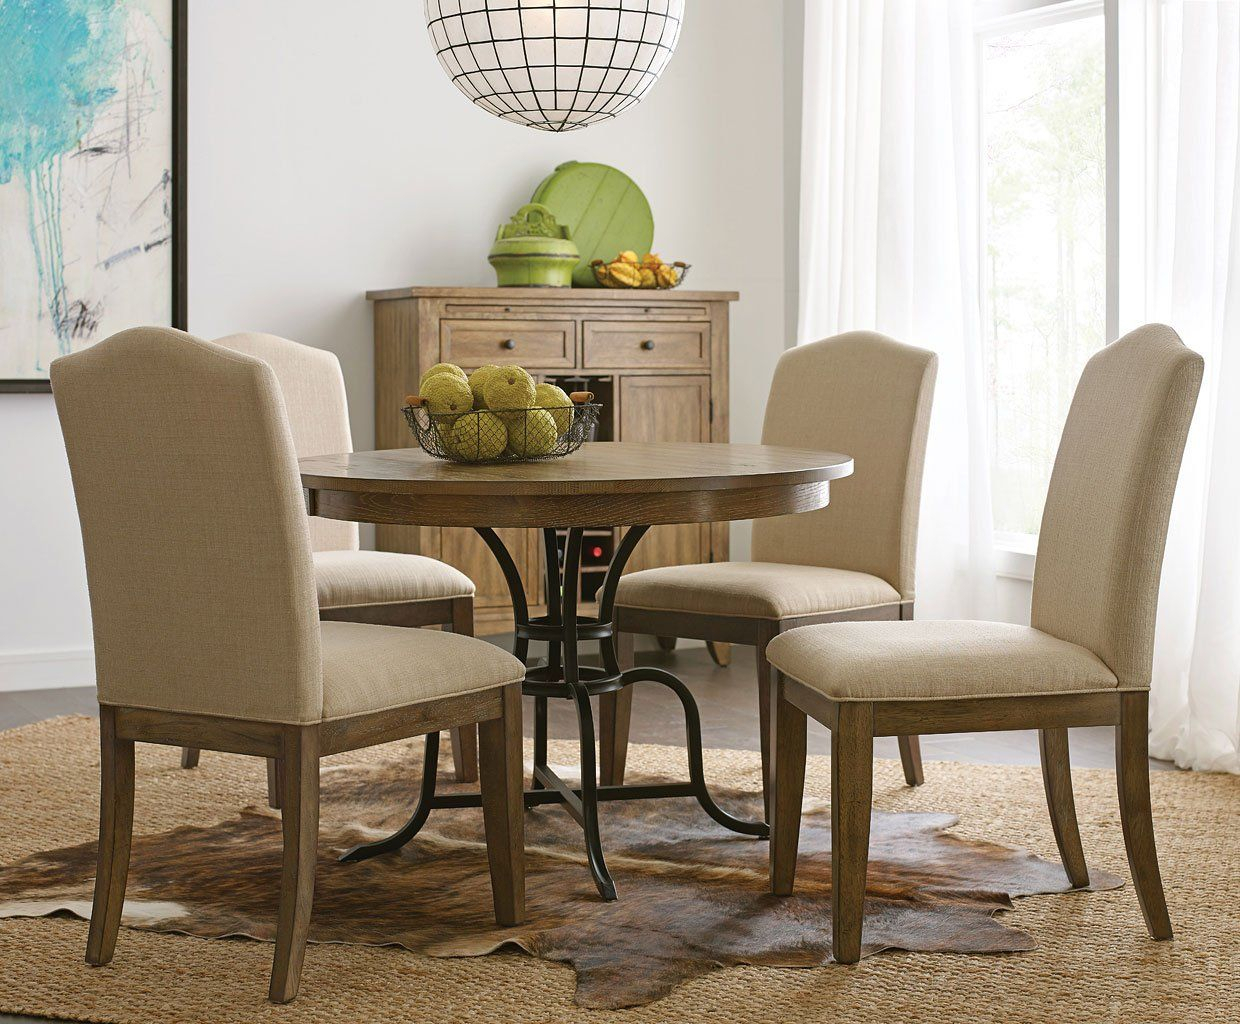 The Nook 54 Inch Round Metal Dining Room Set (Oak) | Solid Within Newest 49'' Dining Tables (View 8 of 15)